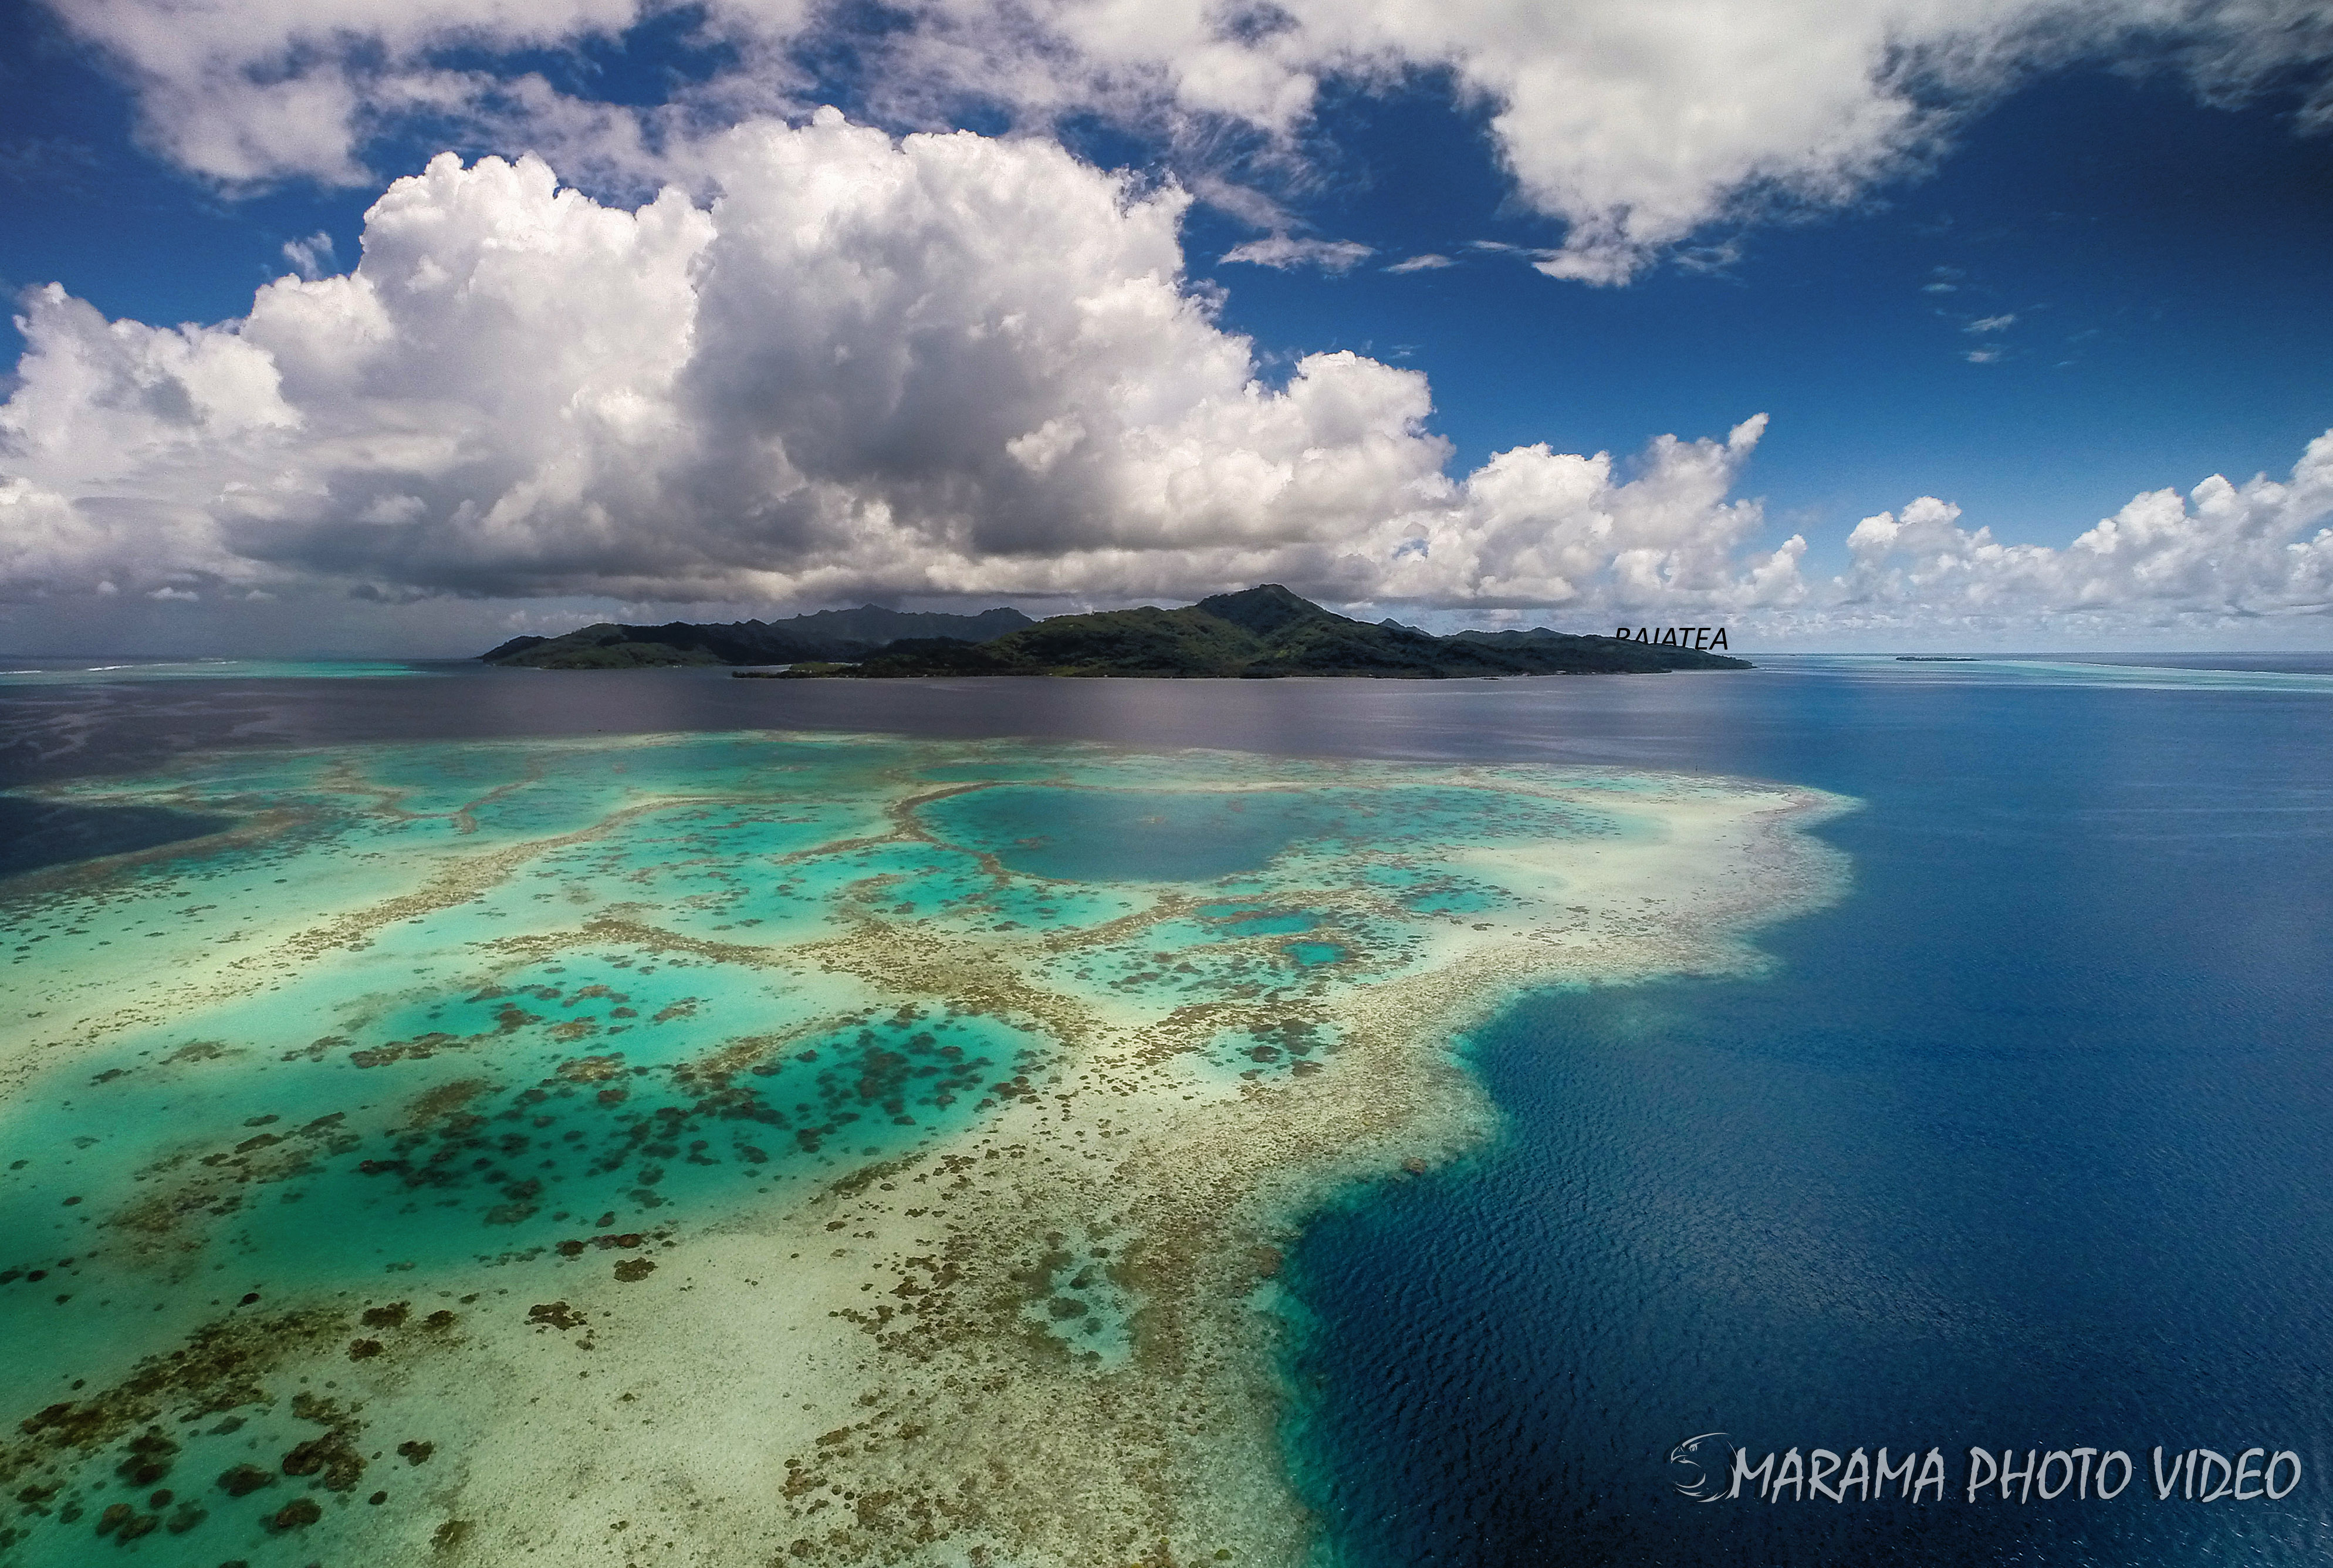 hero drone with Tahiti From Above Raiatea Lagoon French Polynesia on Watch as well Tahiti From Above Raiatea Lagoon French Polynesia additionally Gopro Hero 5 Vs Hero 4 2 further Waterproof Drone Camera Tracker Lily likewise Us Government.